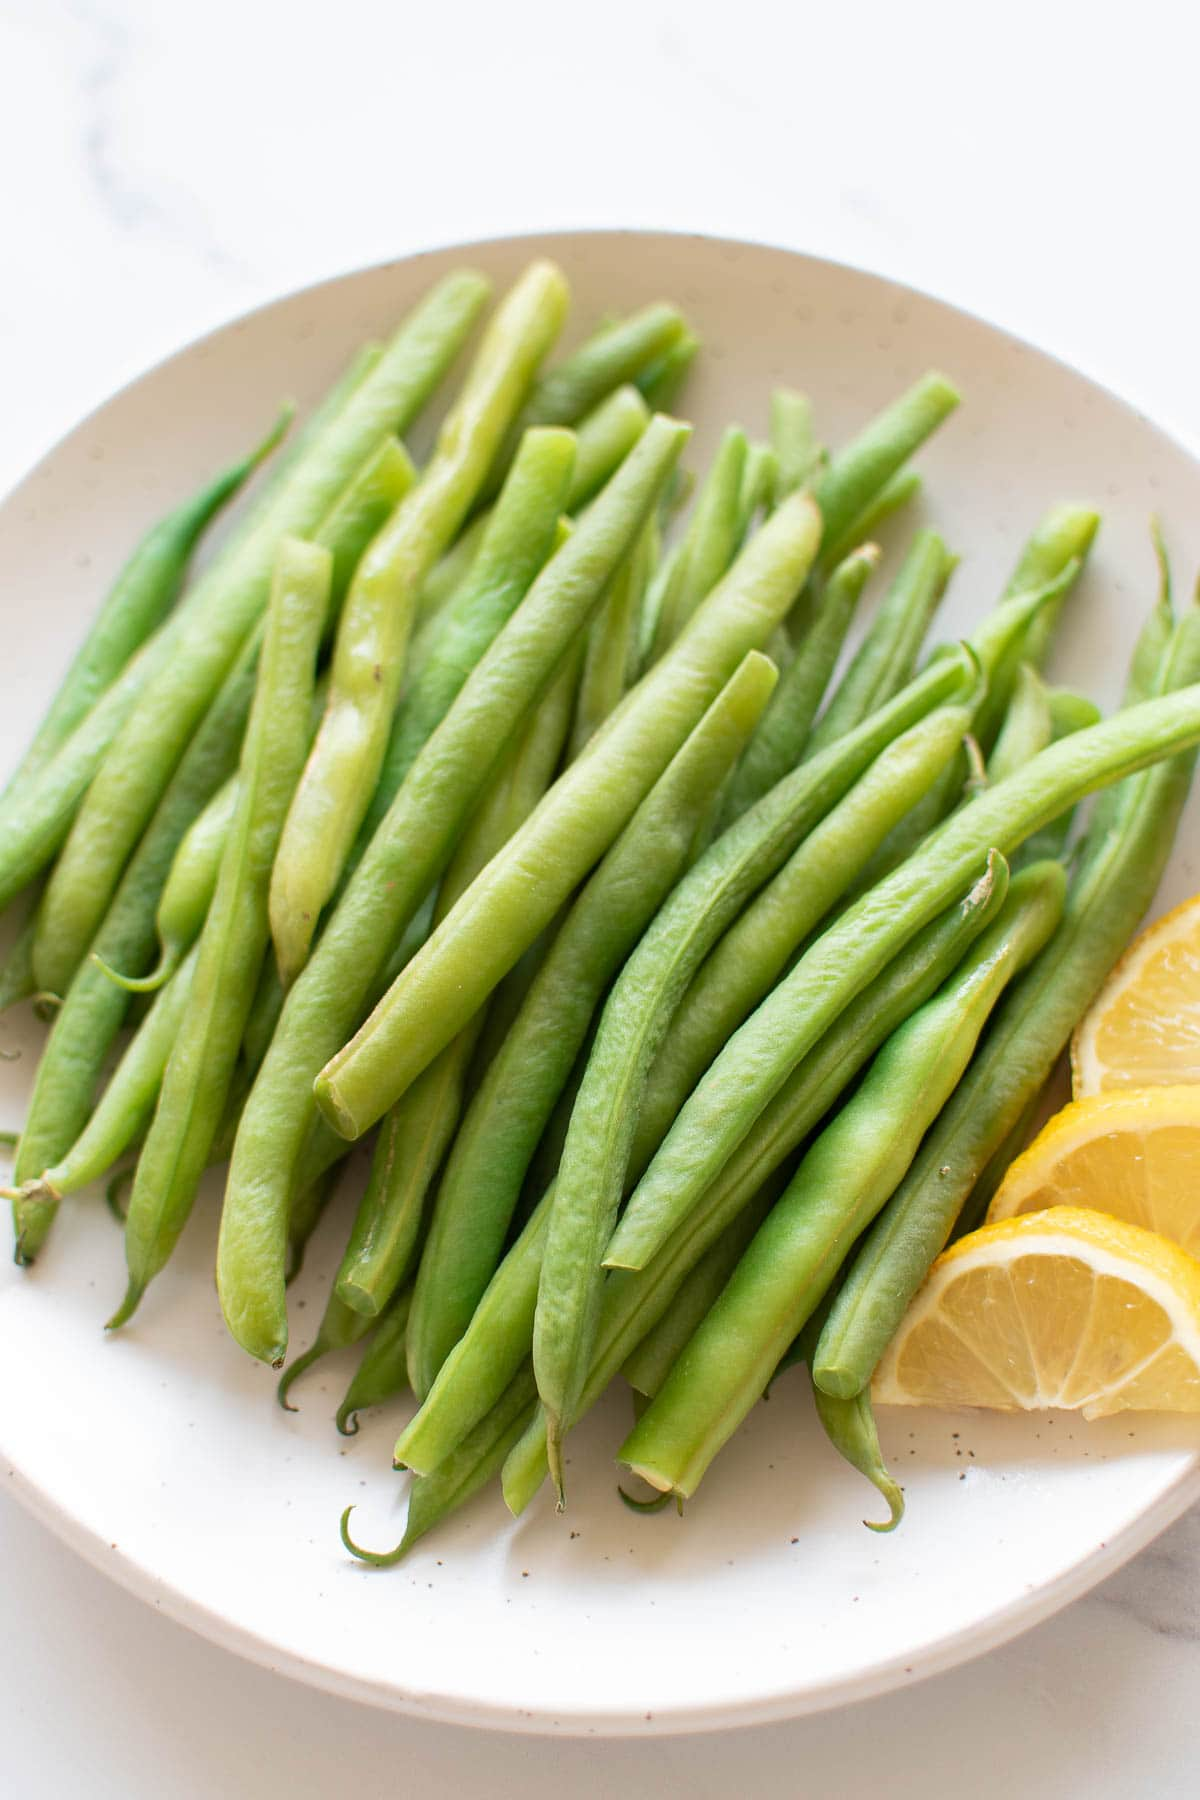 Close up of a plate of steamed green beans.